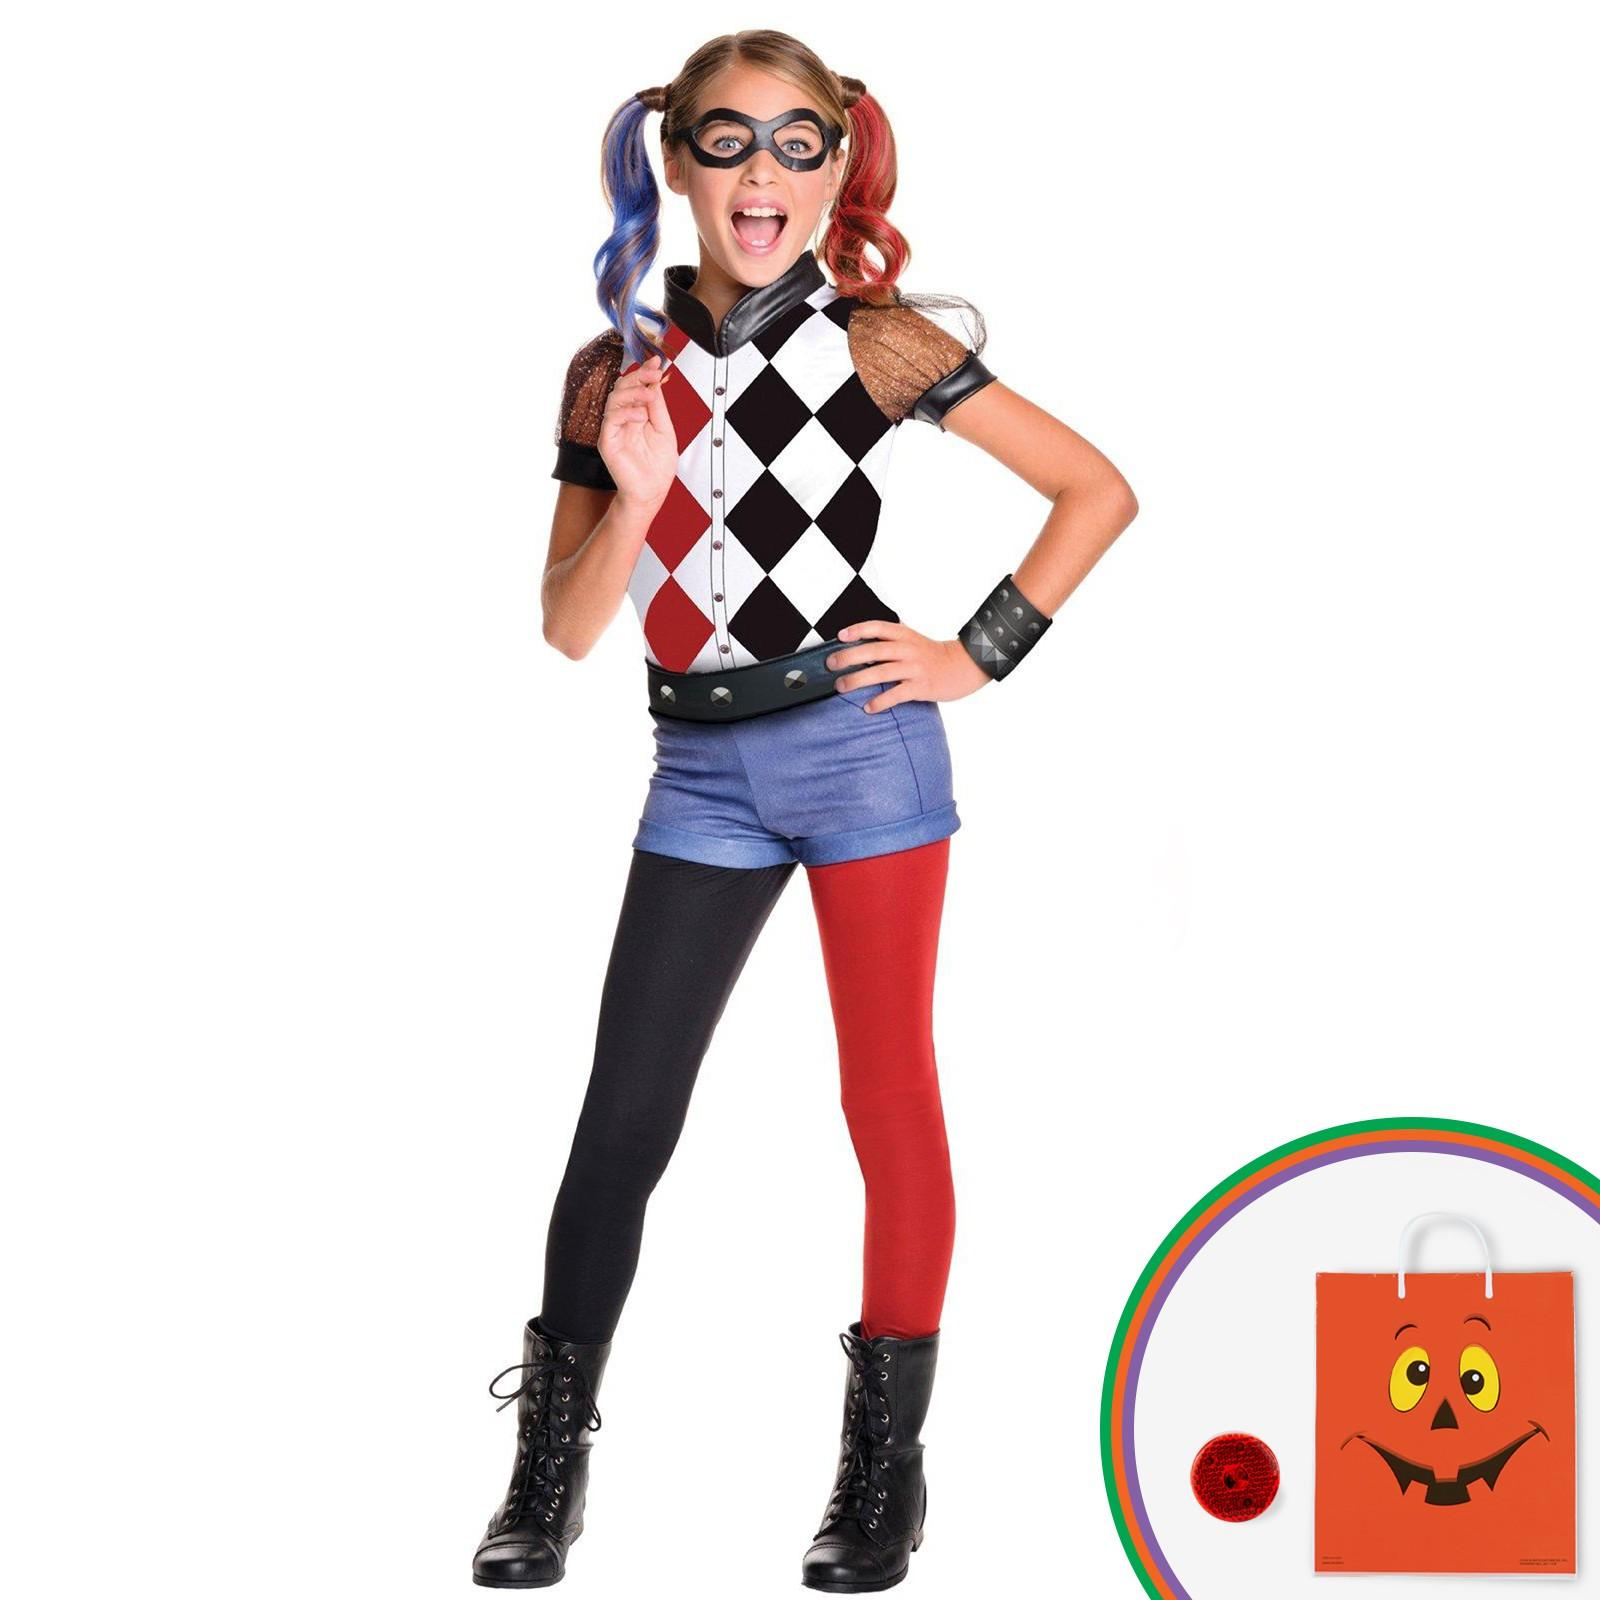 DC Superhero Girls: Harley Quinn Deluxe Child Costume Kit with Free Gift by Rubies